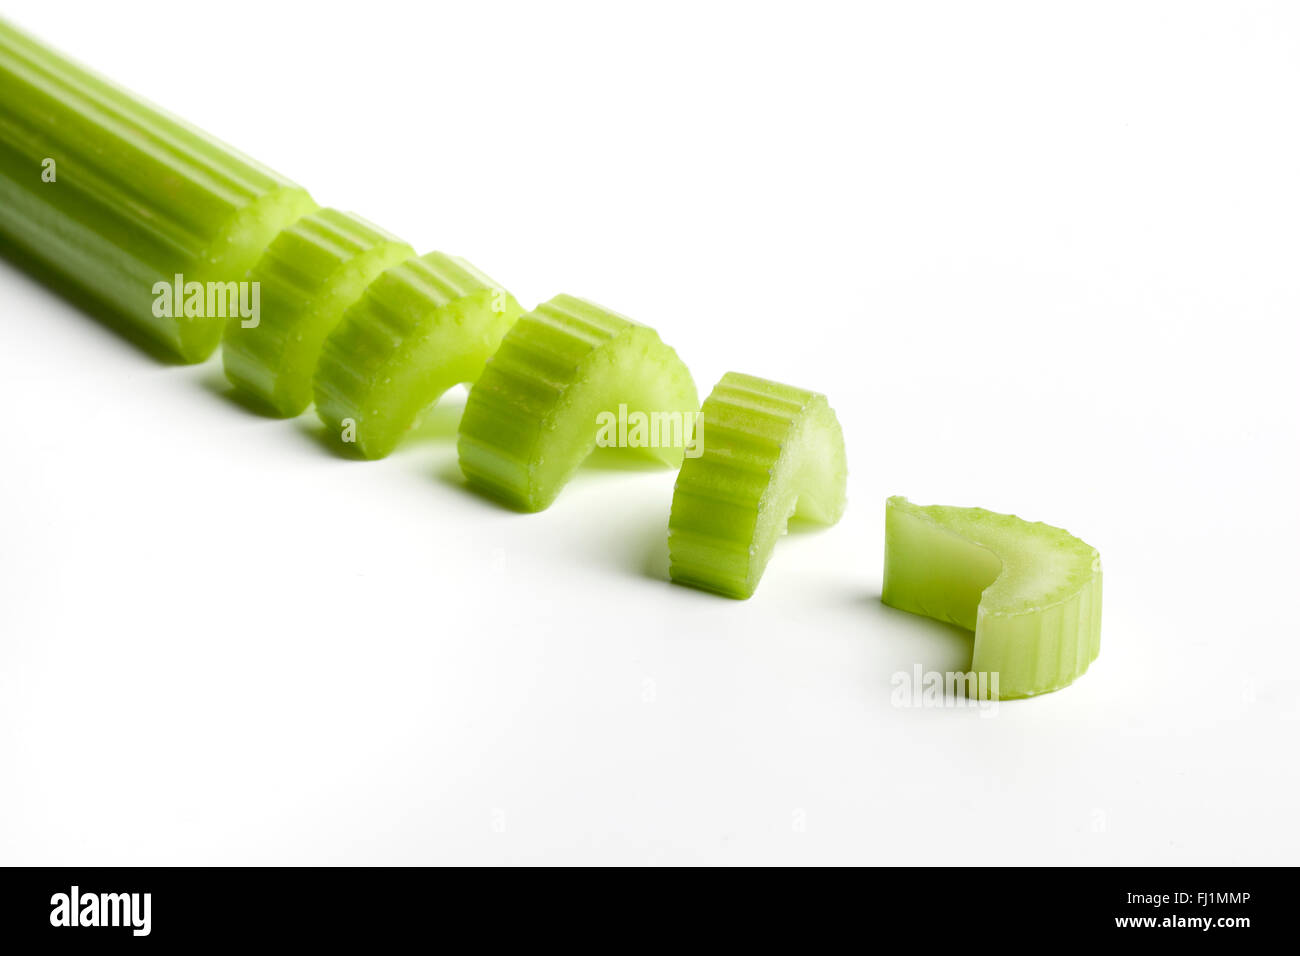 Fresh raw celery stem cut into pieces on white background - Stock Image